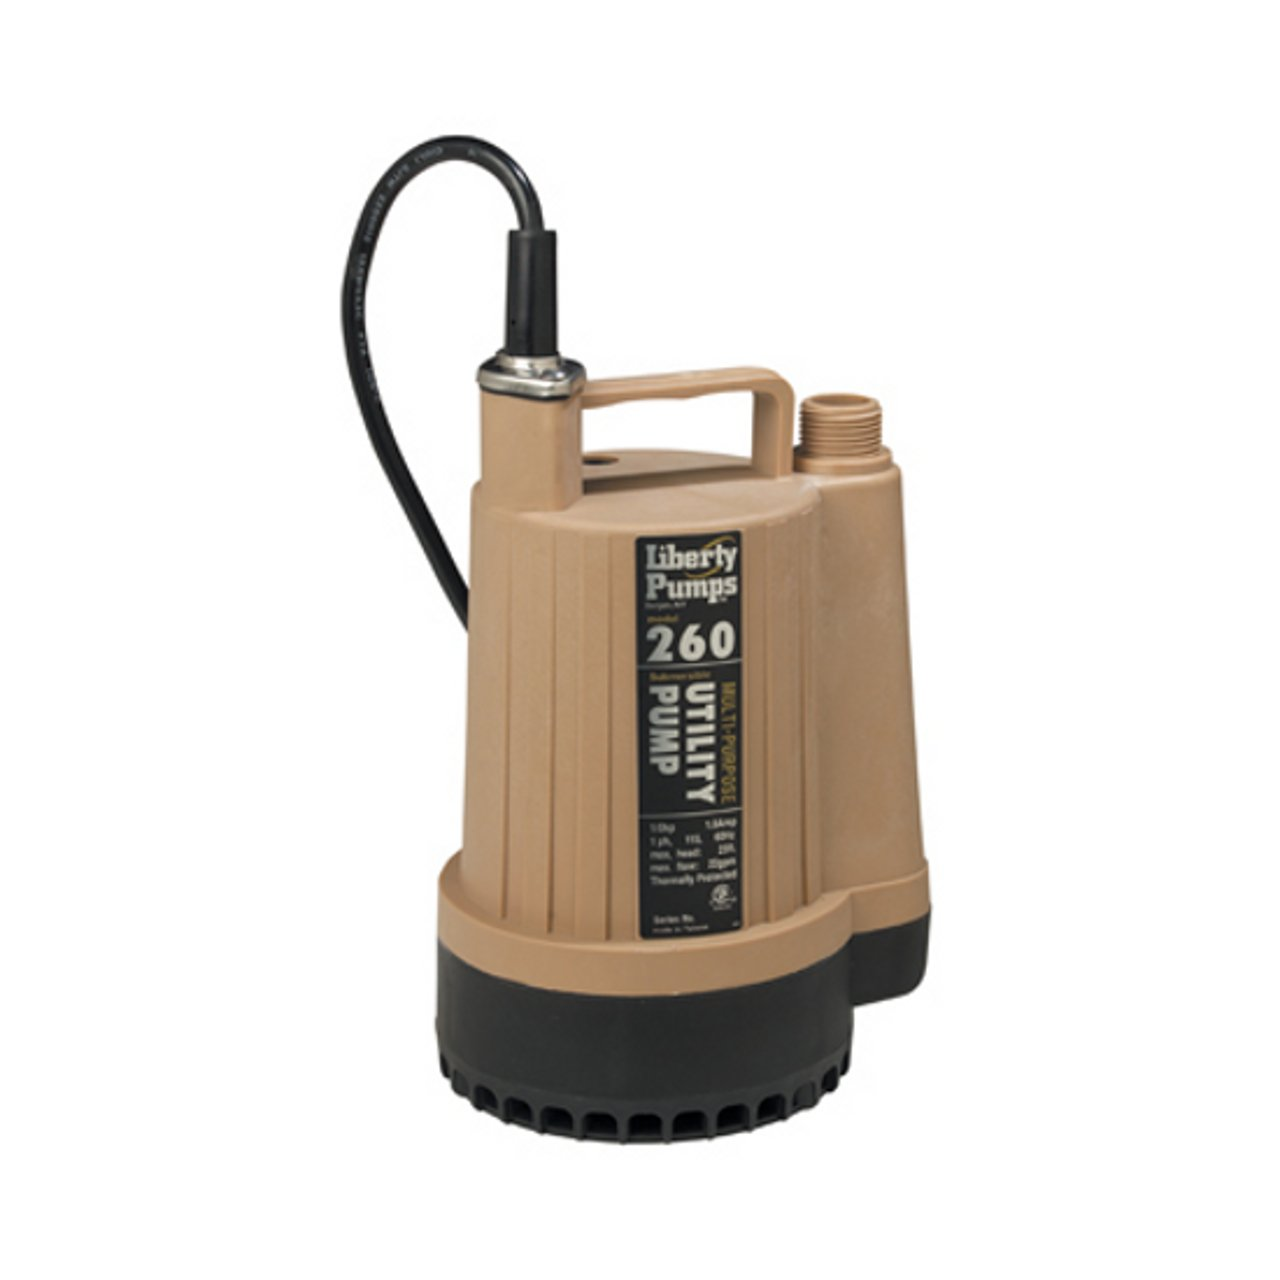 Liberty Pumps 260 1/6-Horse Power 3/4-Inch Discharge Submersible Utility Pump